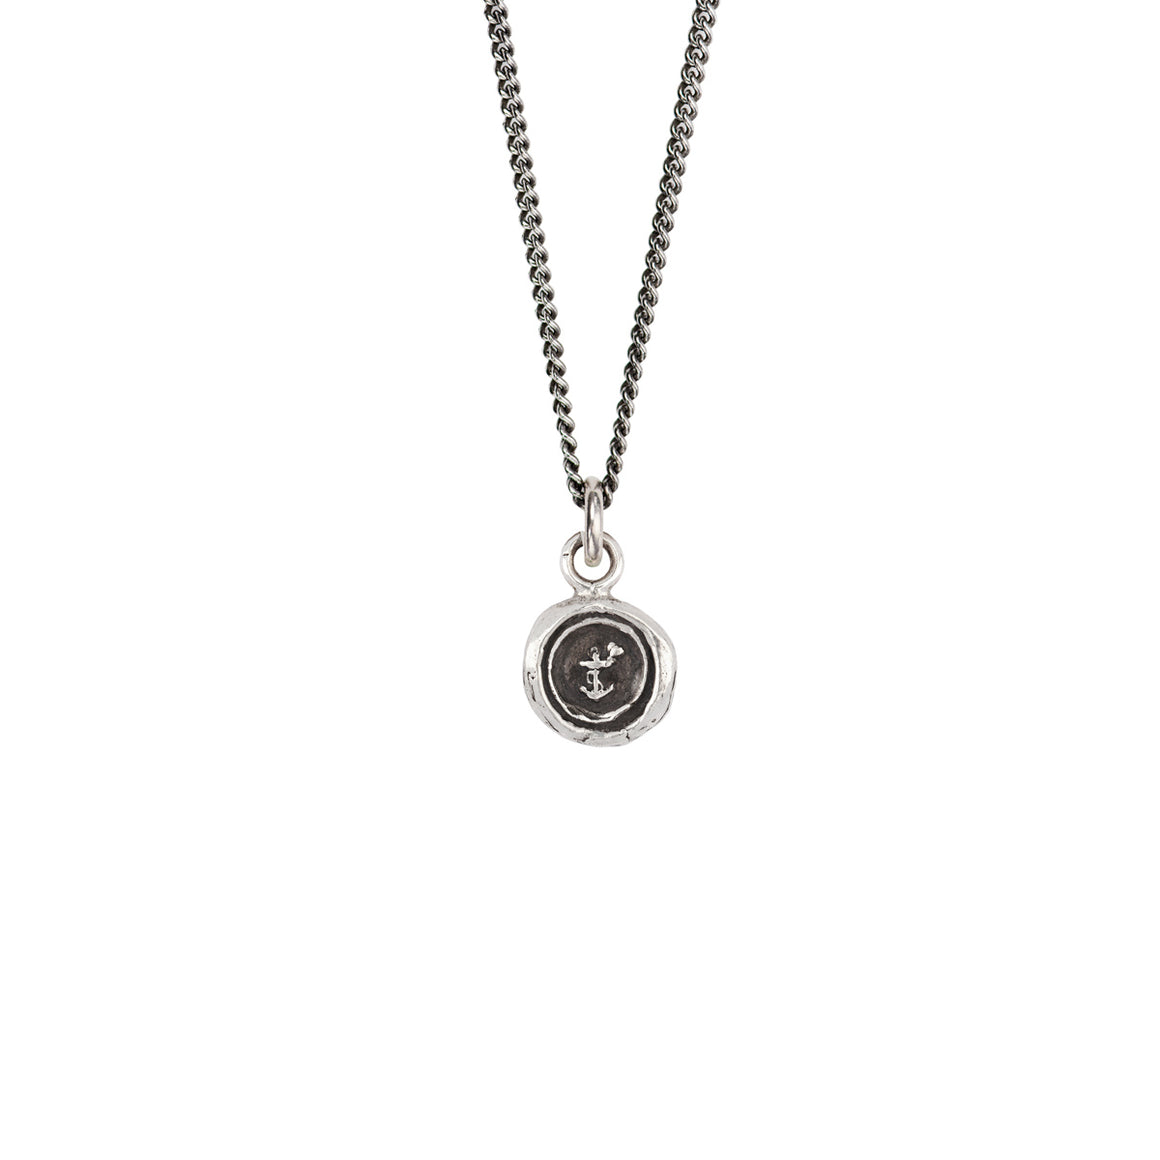 PYRRHA OPTIMISM TALISMAN NECKLACE